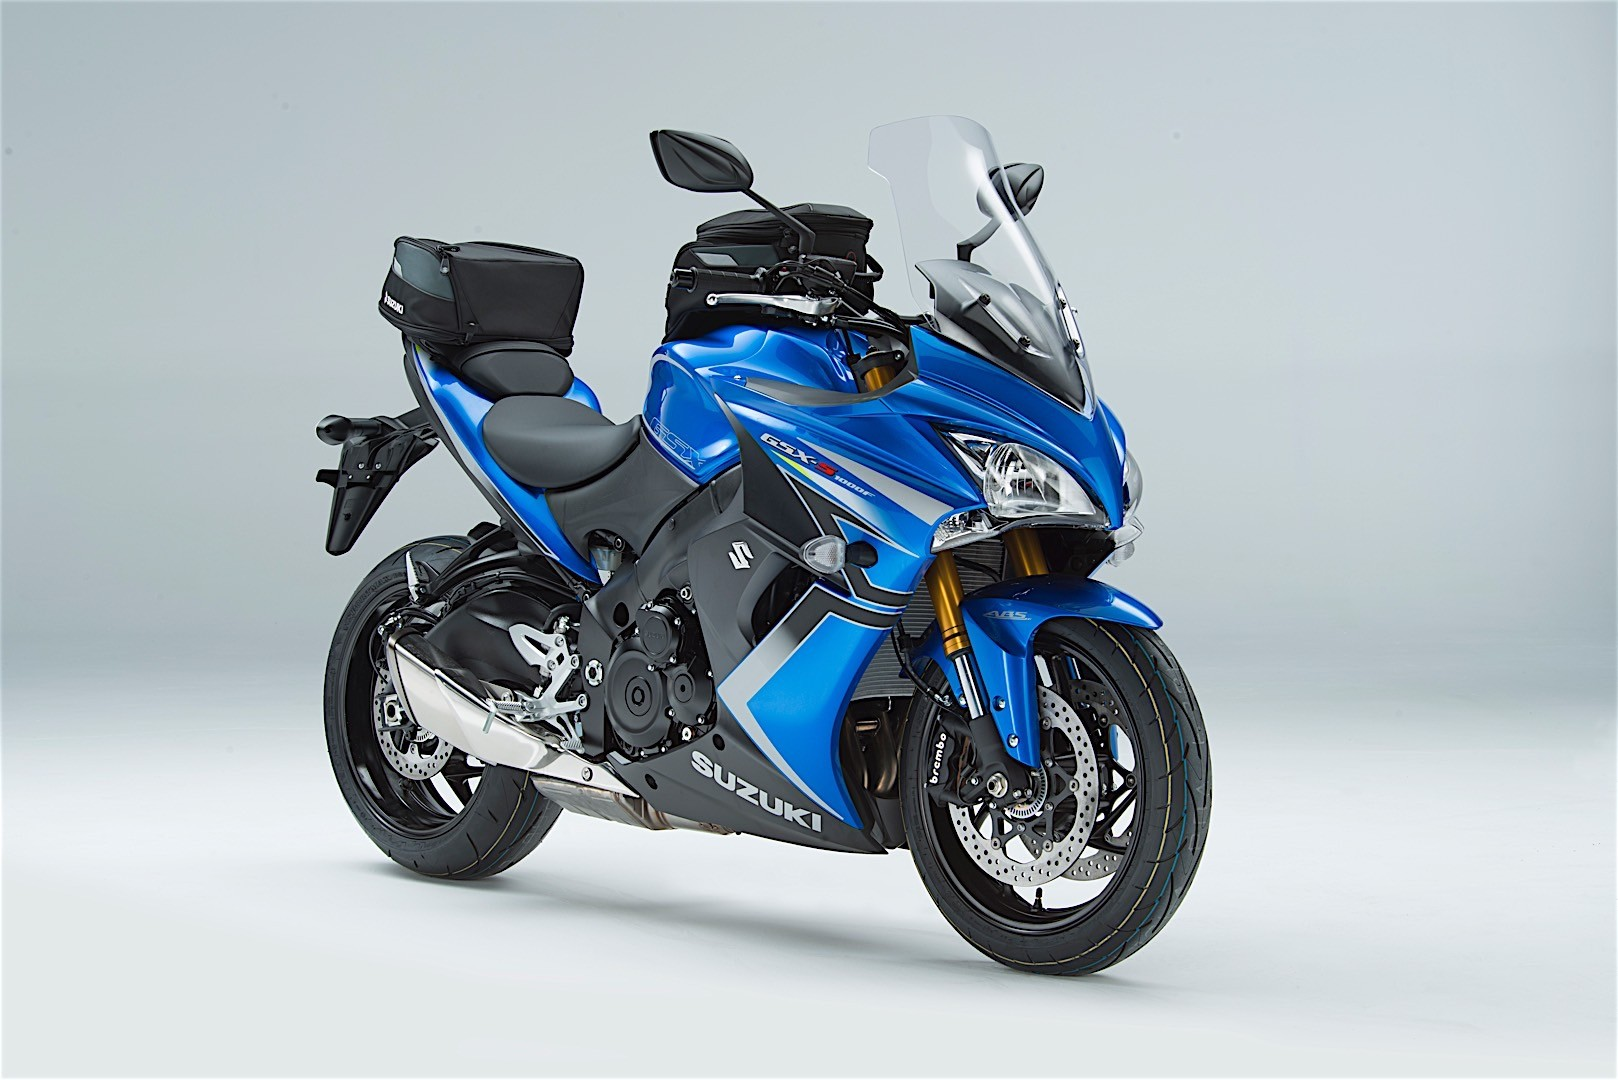 suzuki reveals special editions gsx s1000 and gsx s1000f autoevolution. Black Bedroom Furniture Sets. Home Design Ideas